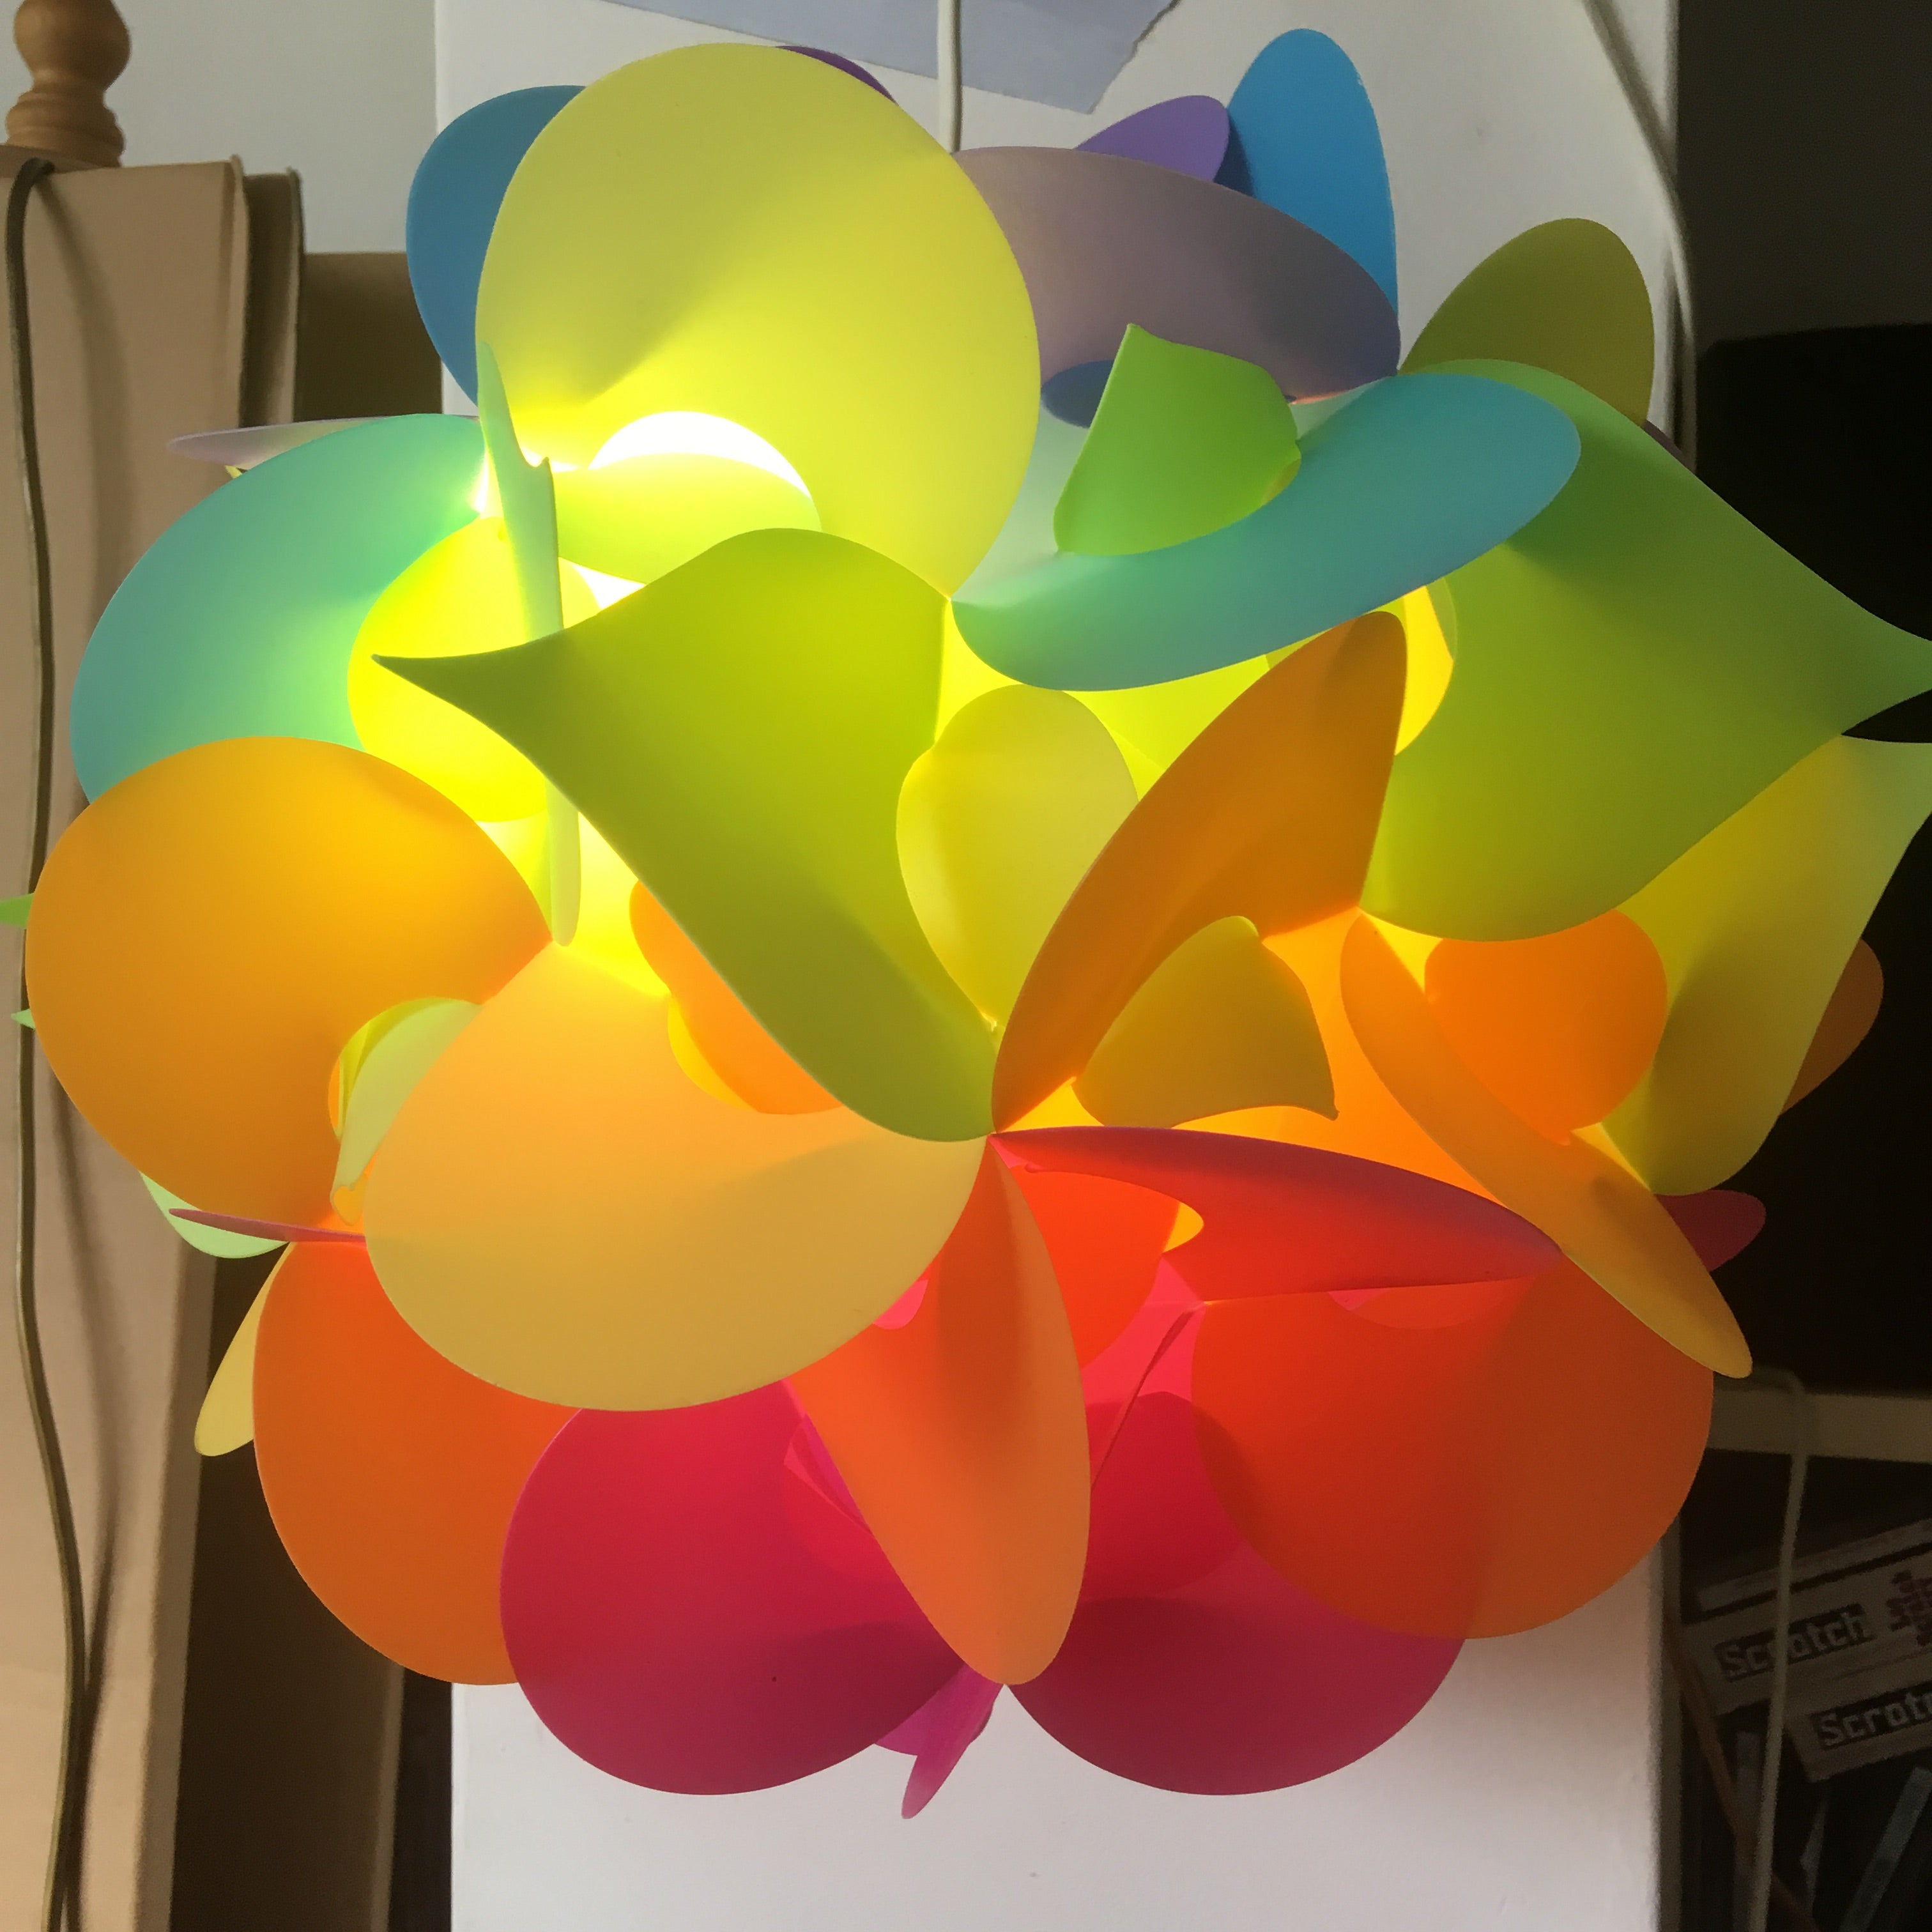 Rainbow Lamp by Smarty Lamps  Smart Deco Homeware Lighting and Art by Jacqueline hammond